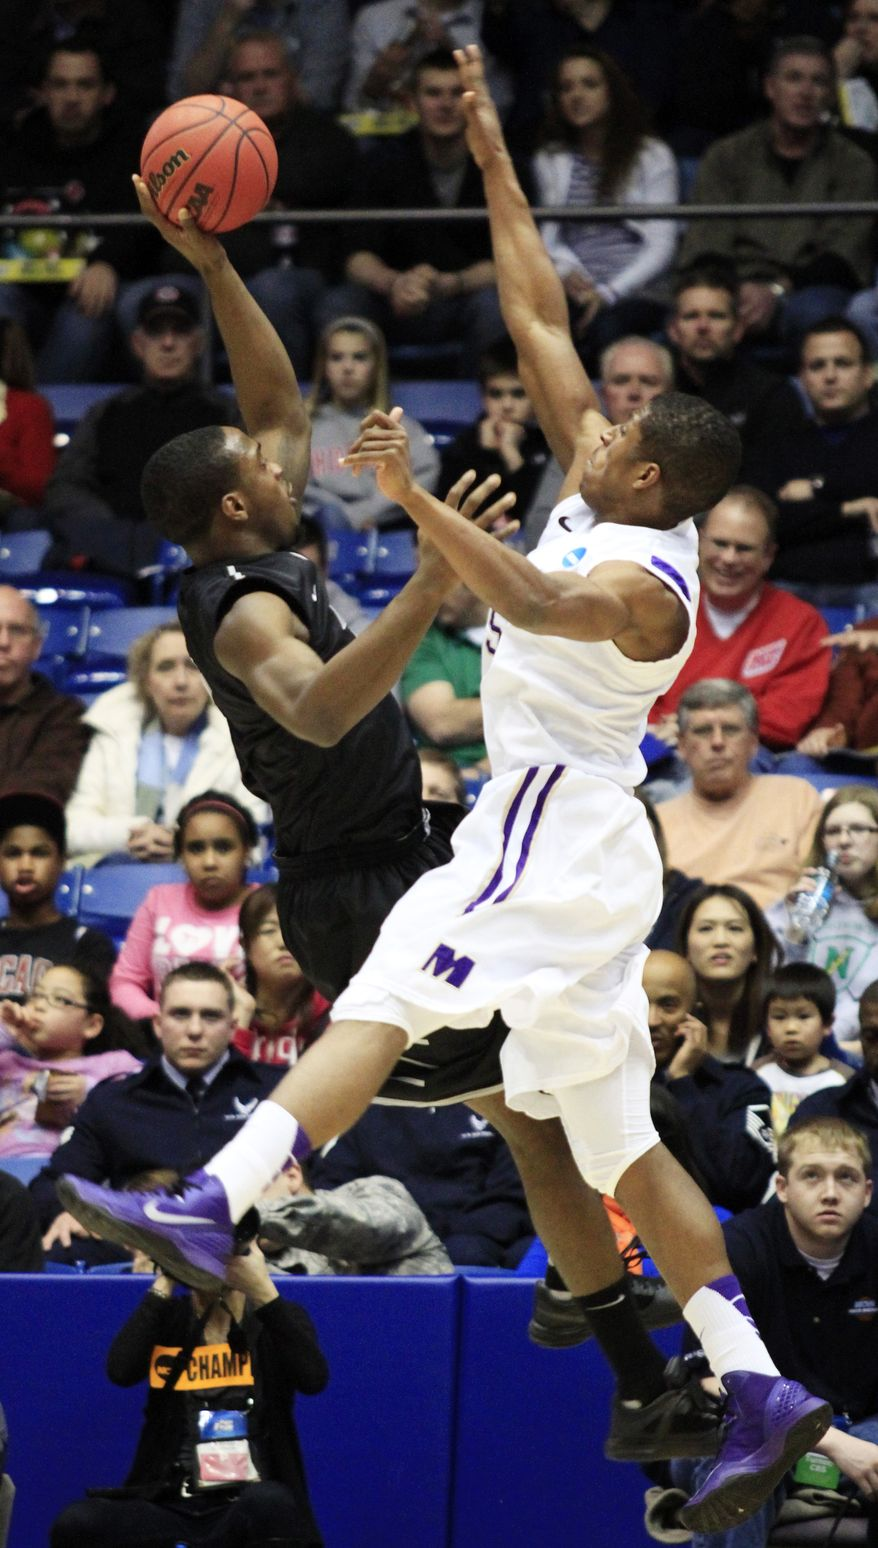 LIU Brooklyn's Gerrell Martin, left, shoots over James Madison guard Alioune Diouf in the first half of a first-round game of the NCAA college basketball tournament, Wednesday, March 20, 2013, in Dayton, Ohio. (AP Photo/Skip Peterson)